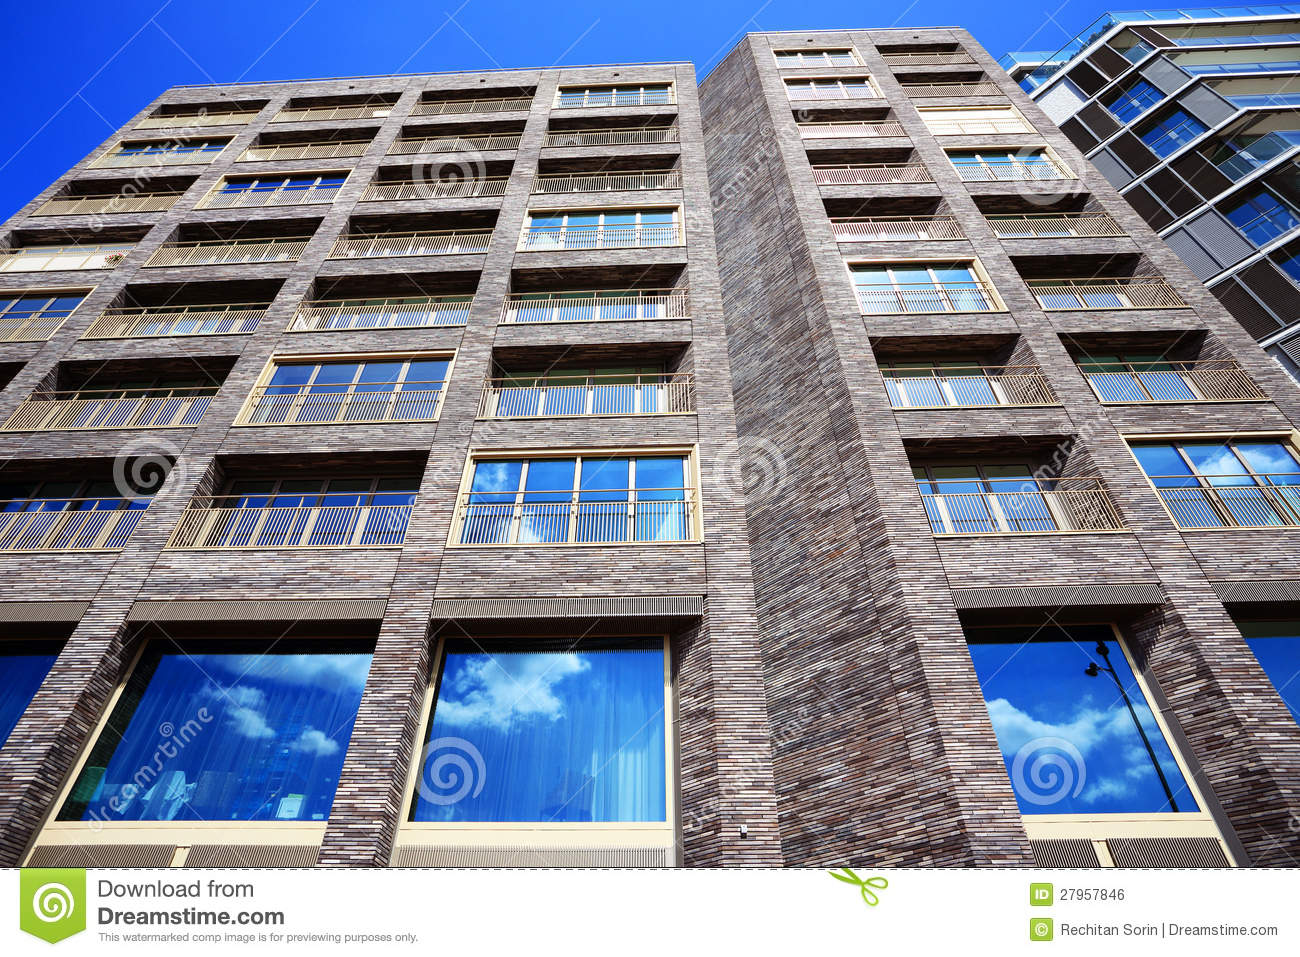 Modern architecture in amsterdam royalty free stock image for Architecture firms in europe